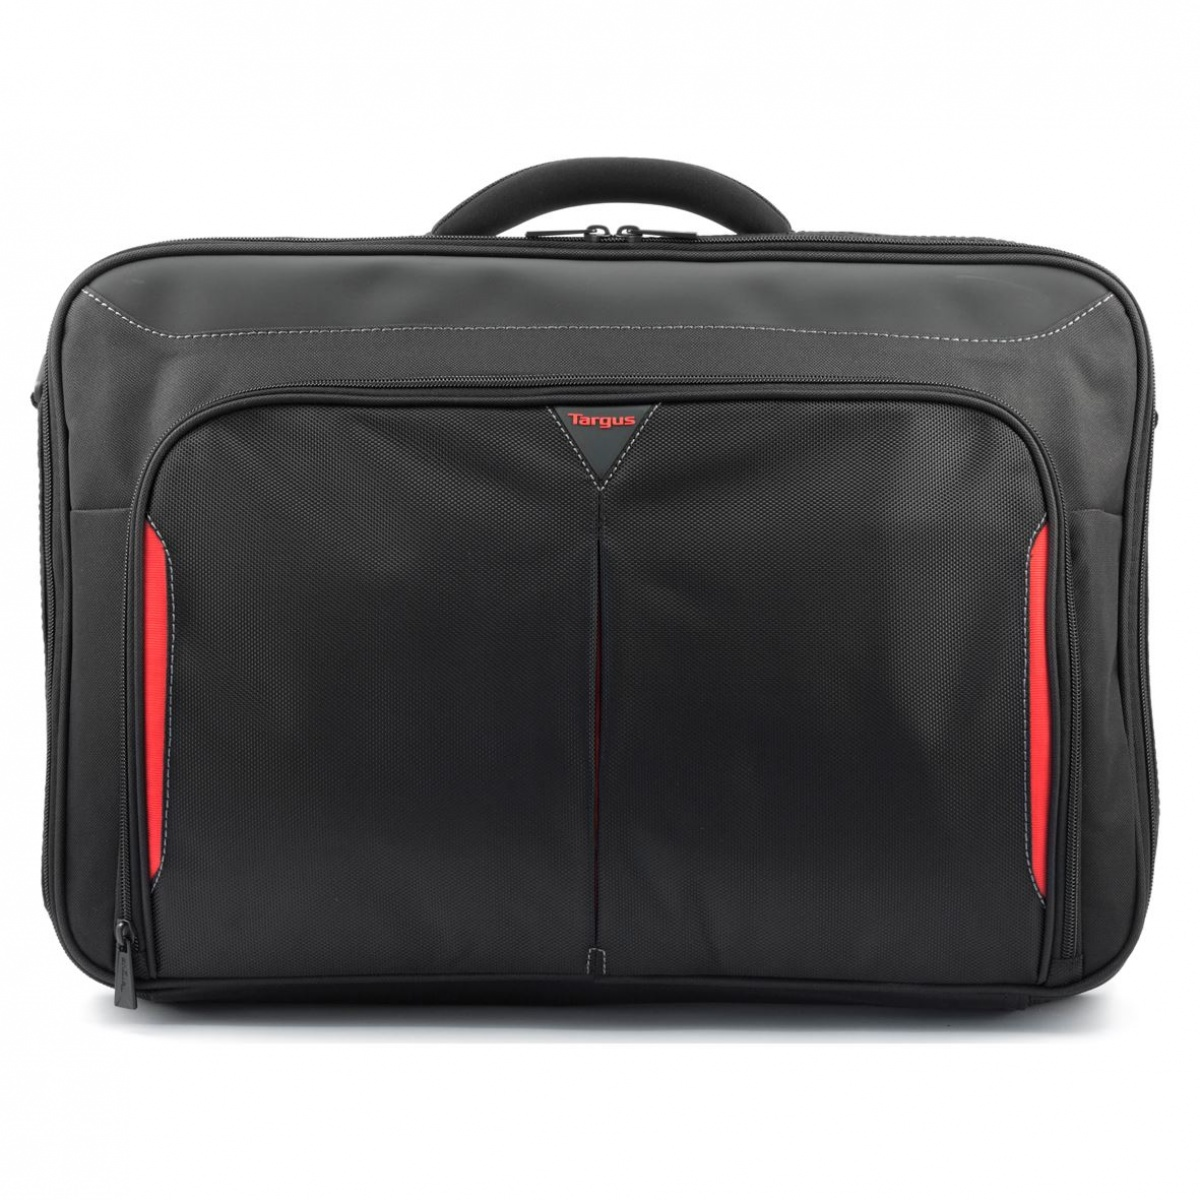 Geanta notebook Classic Clamshell, 17-18 inch, neagra